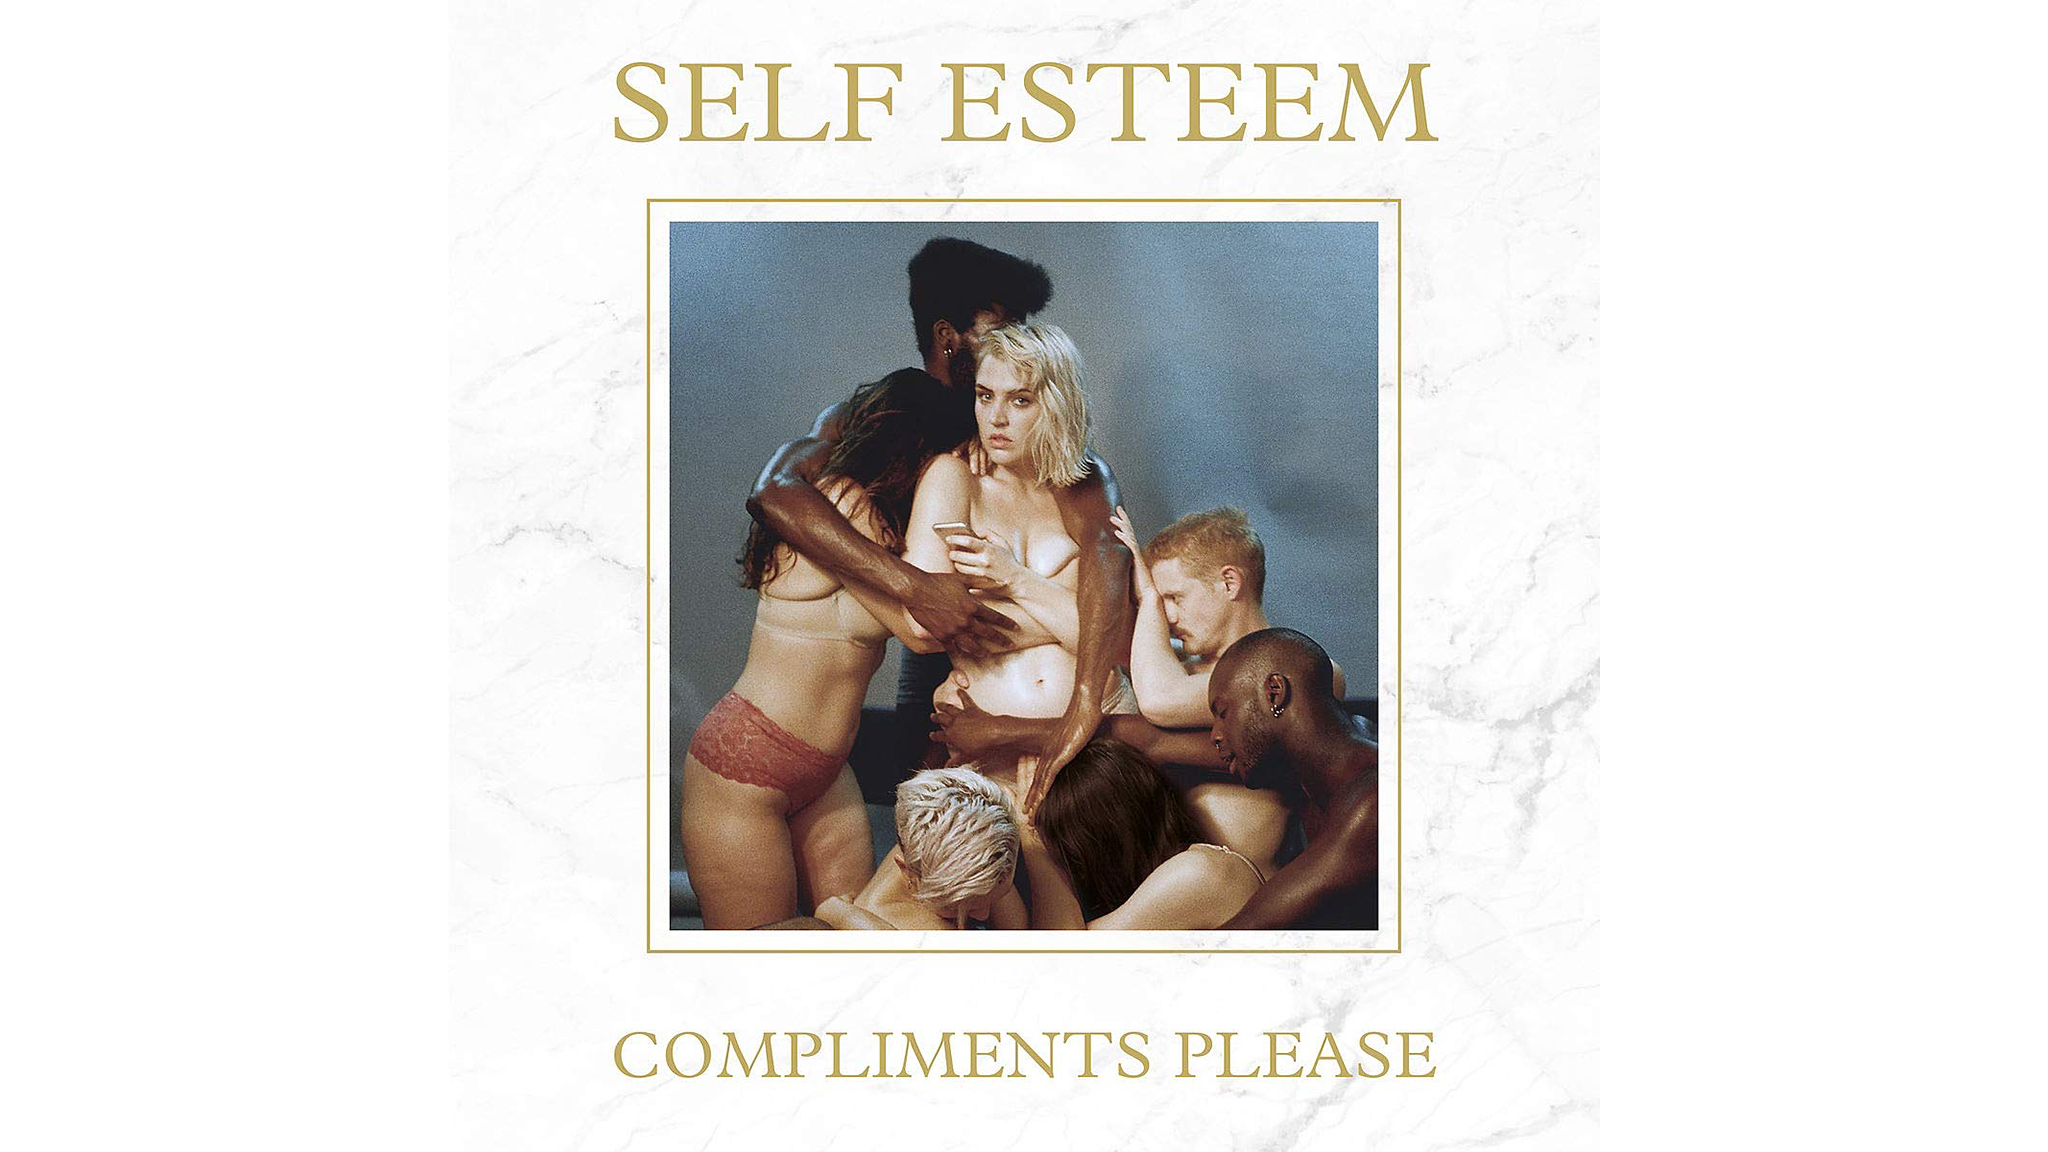 Self Esteem Compliments Please Lithe Electro Pop Financial Times